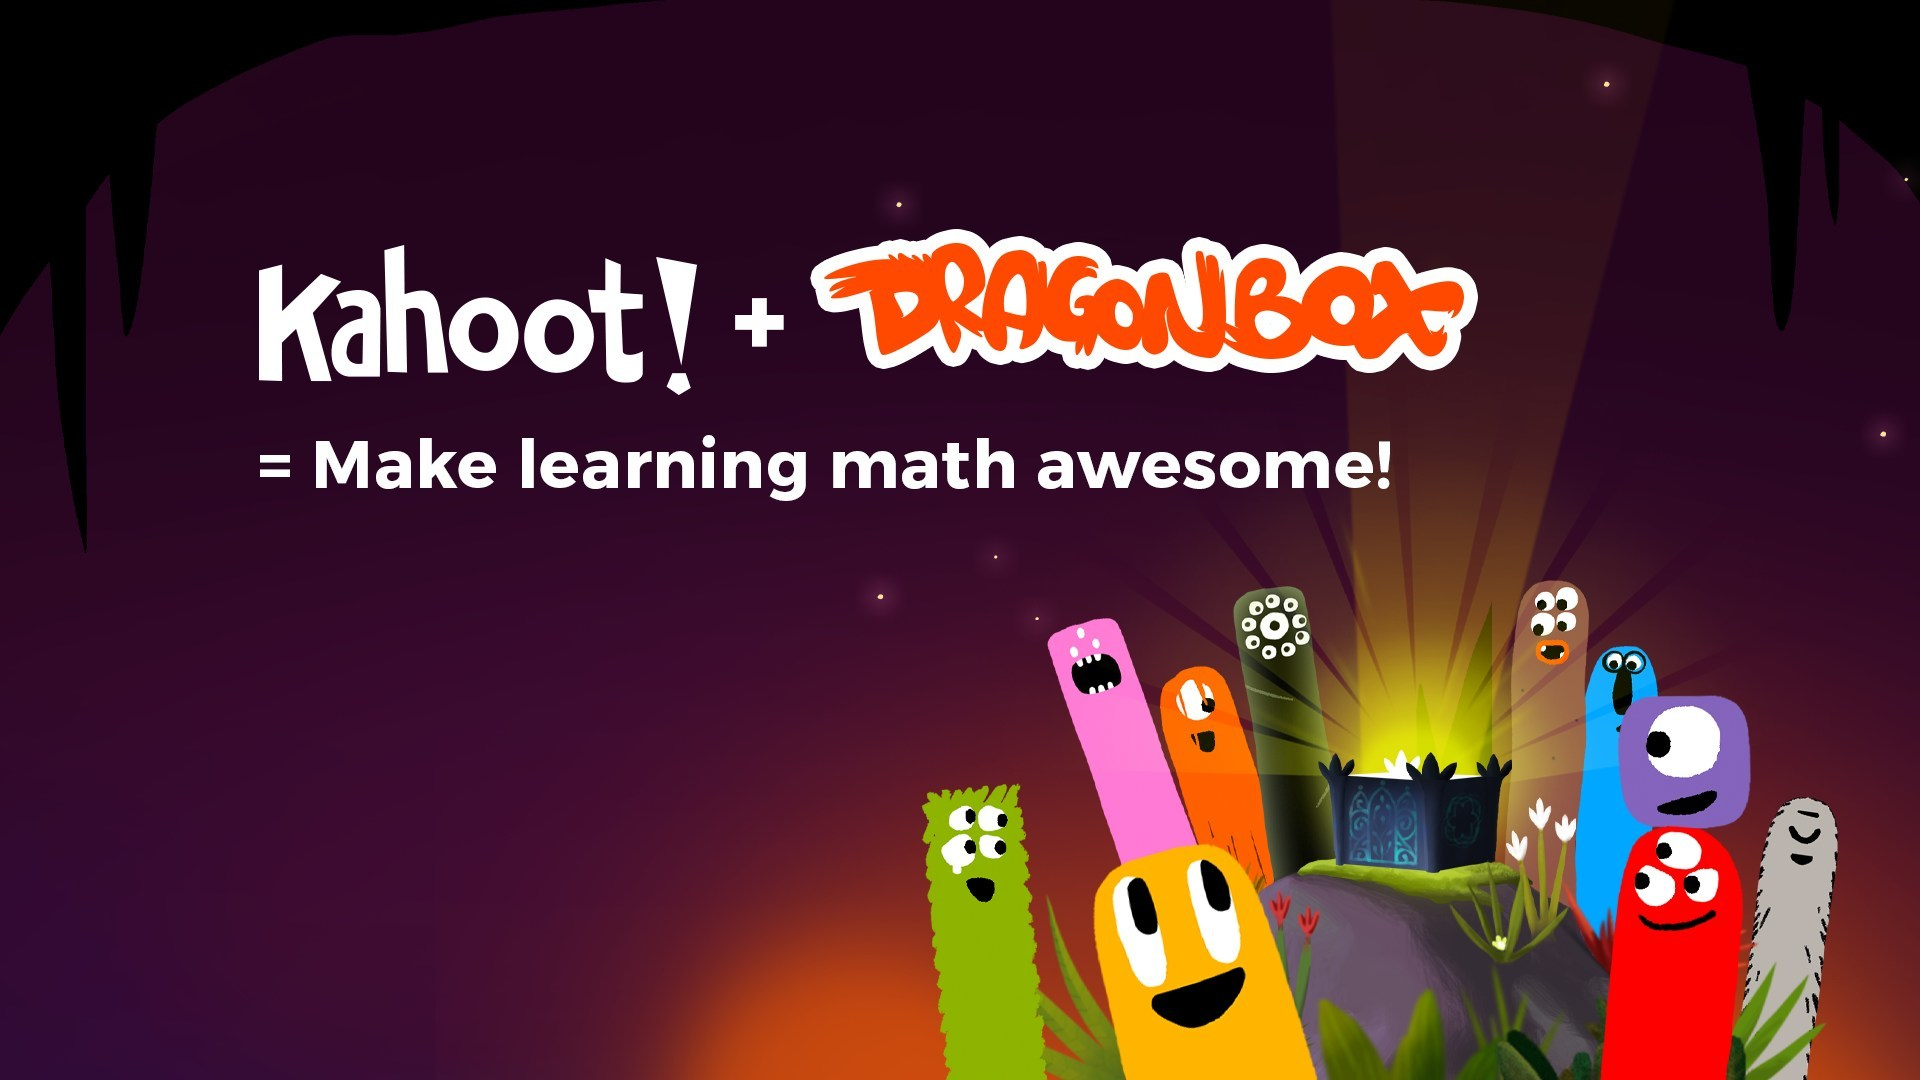 Kahoot! and DragonBox join forces to create an awesome math